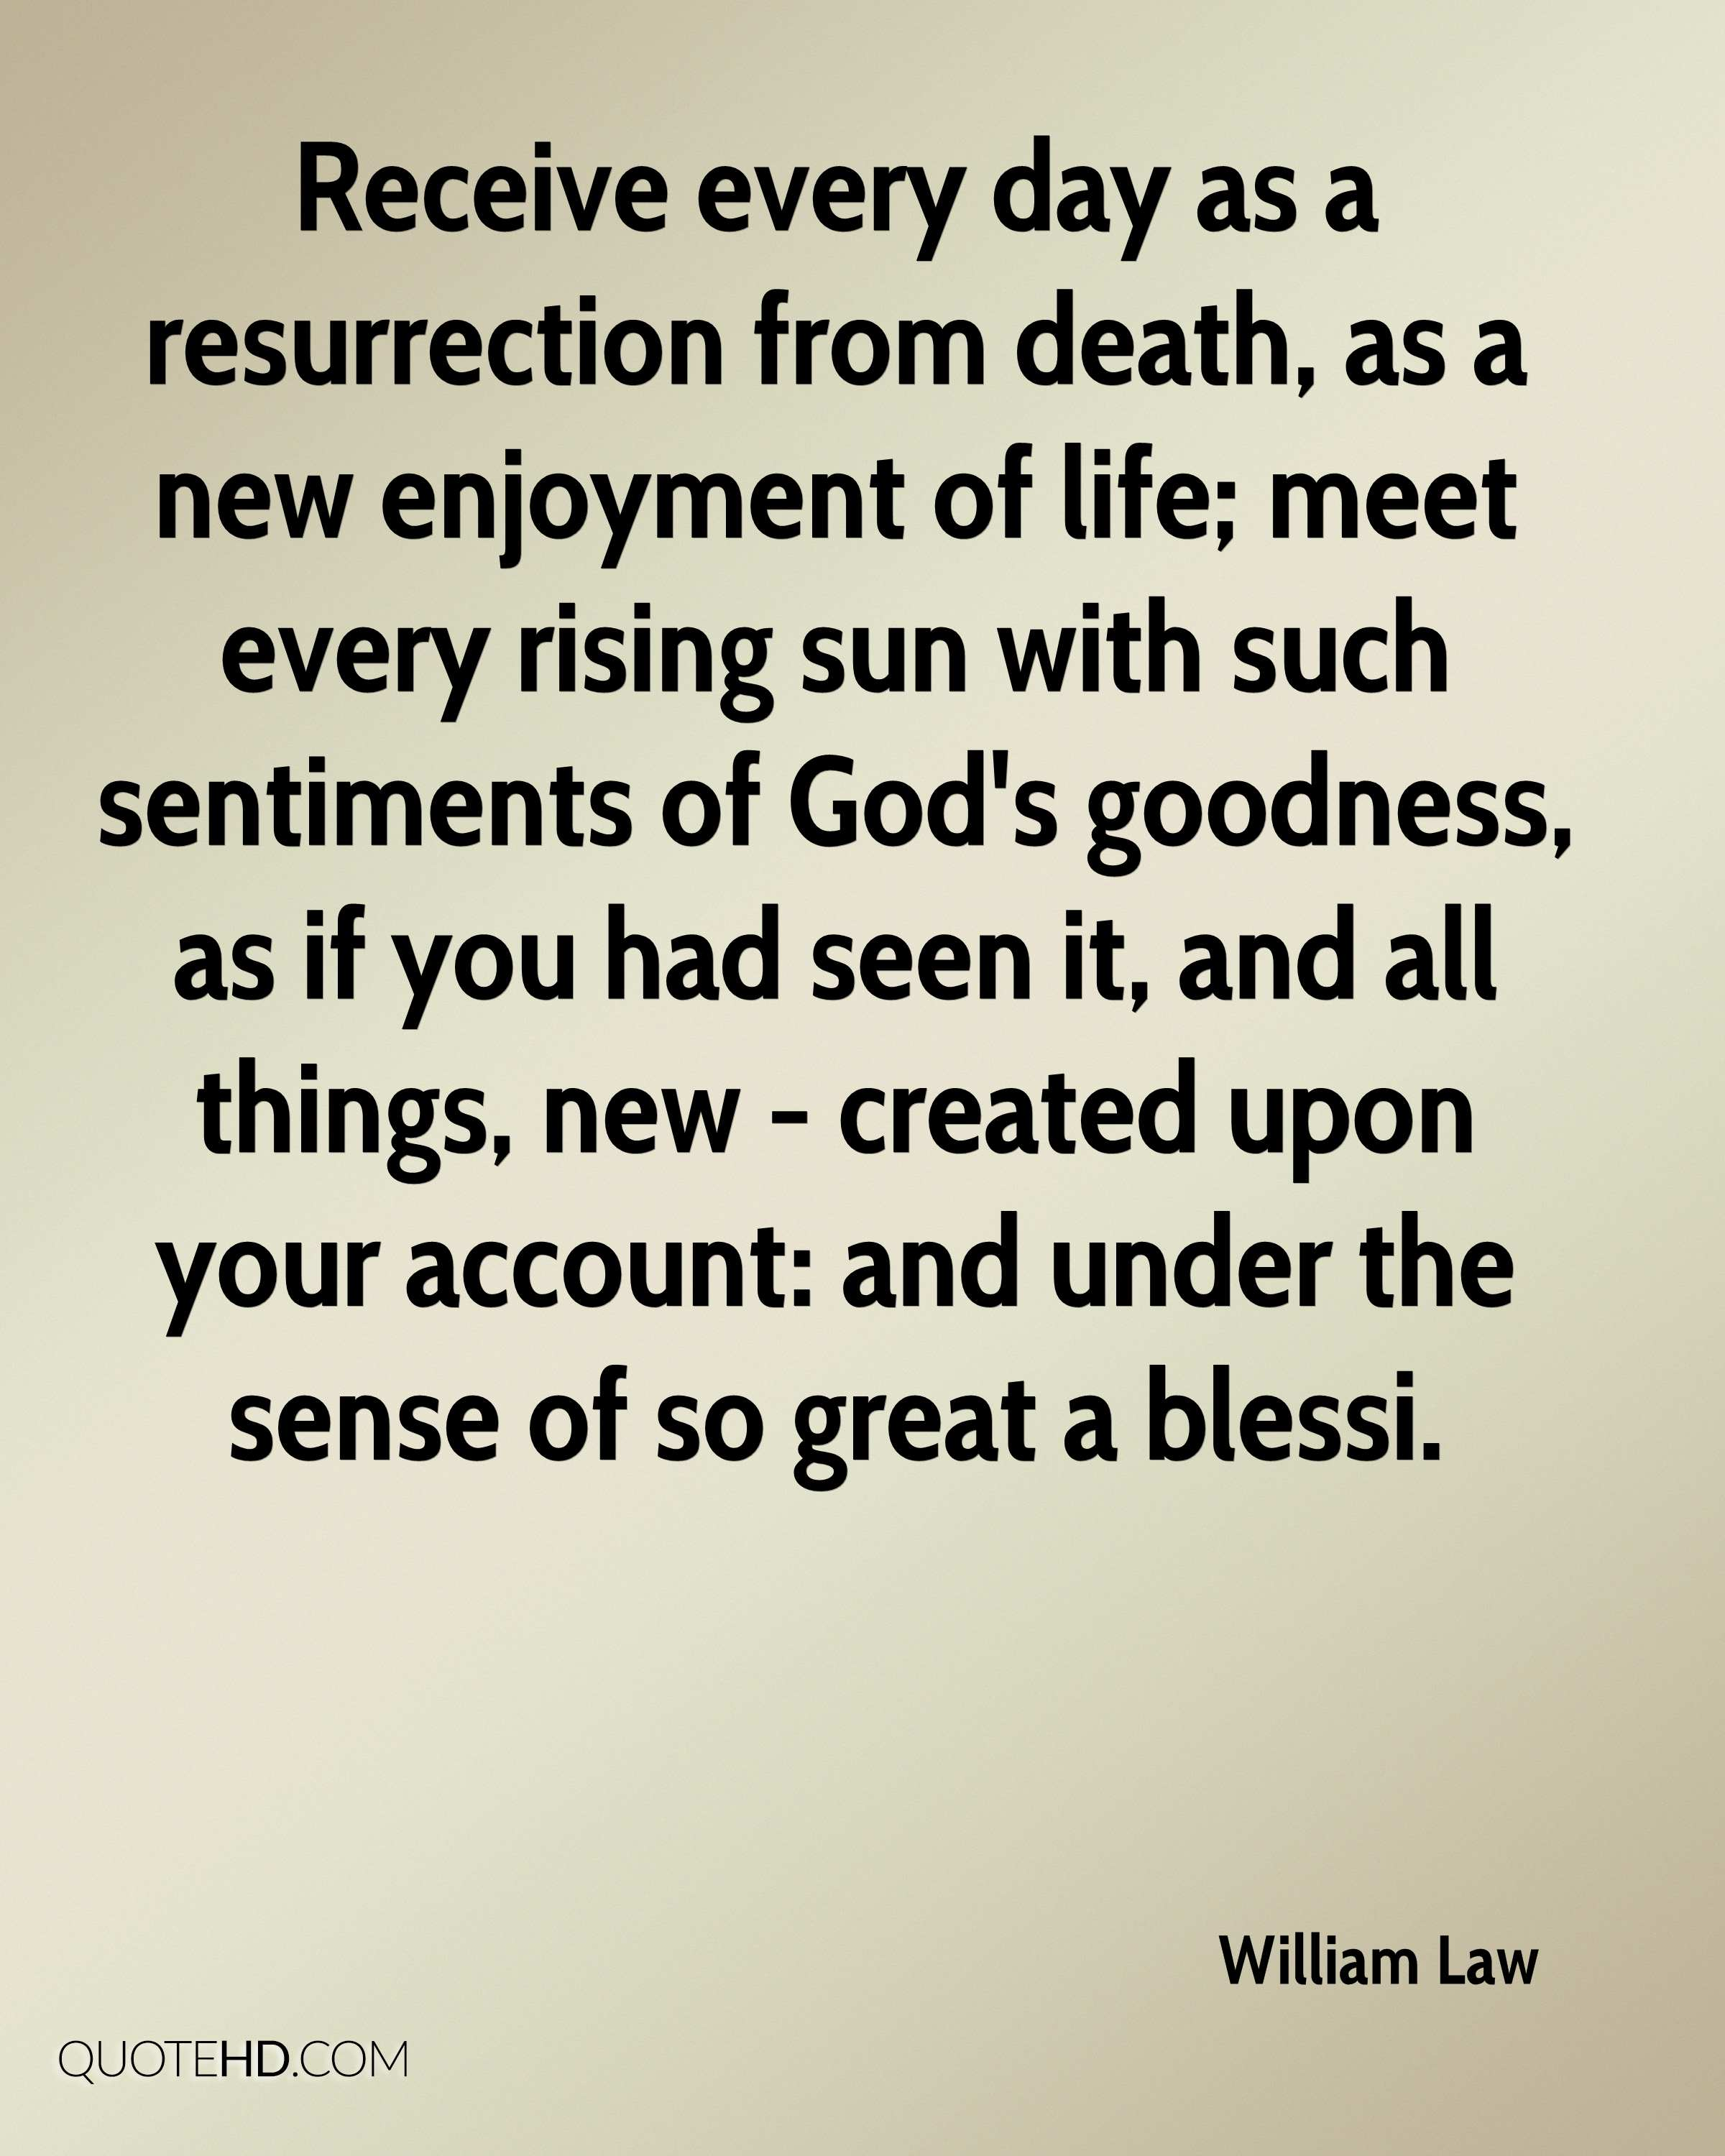 Great Quotes About Life And Death: William Law Death Quotes